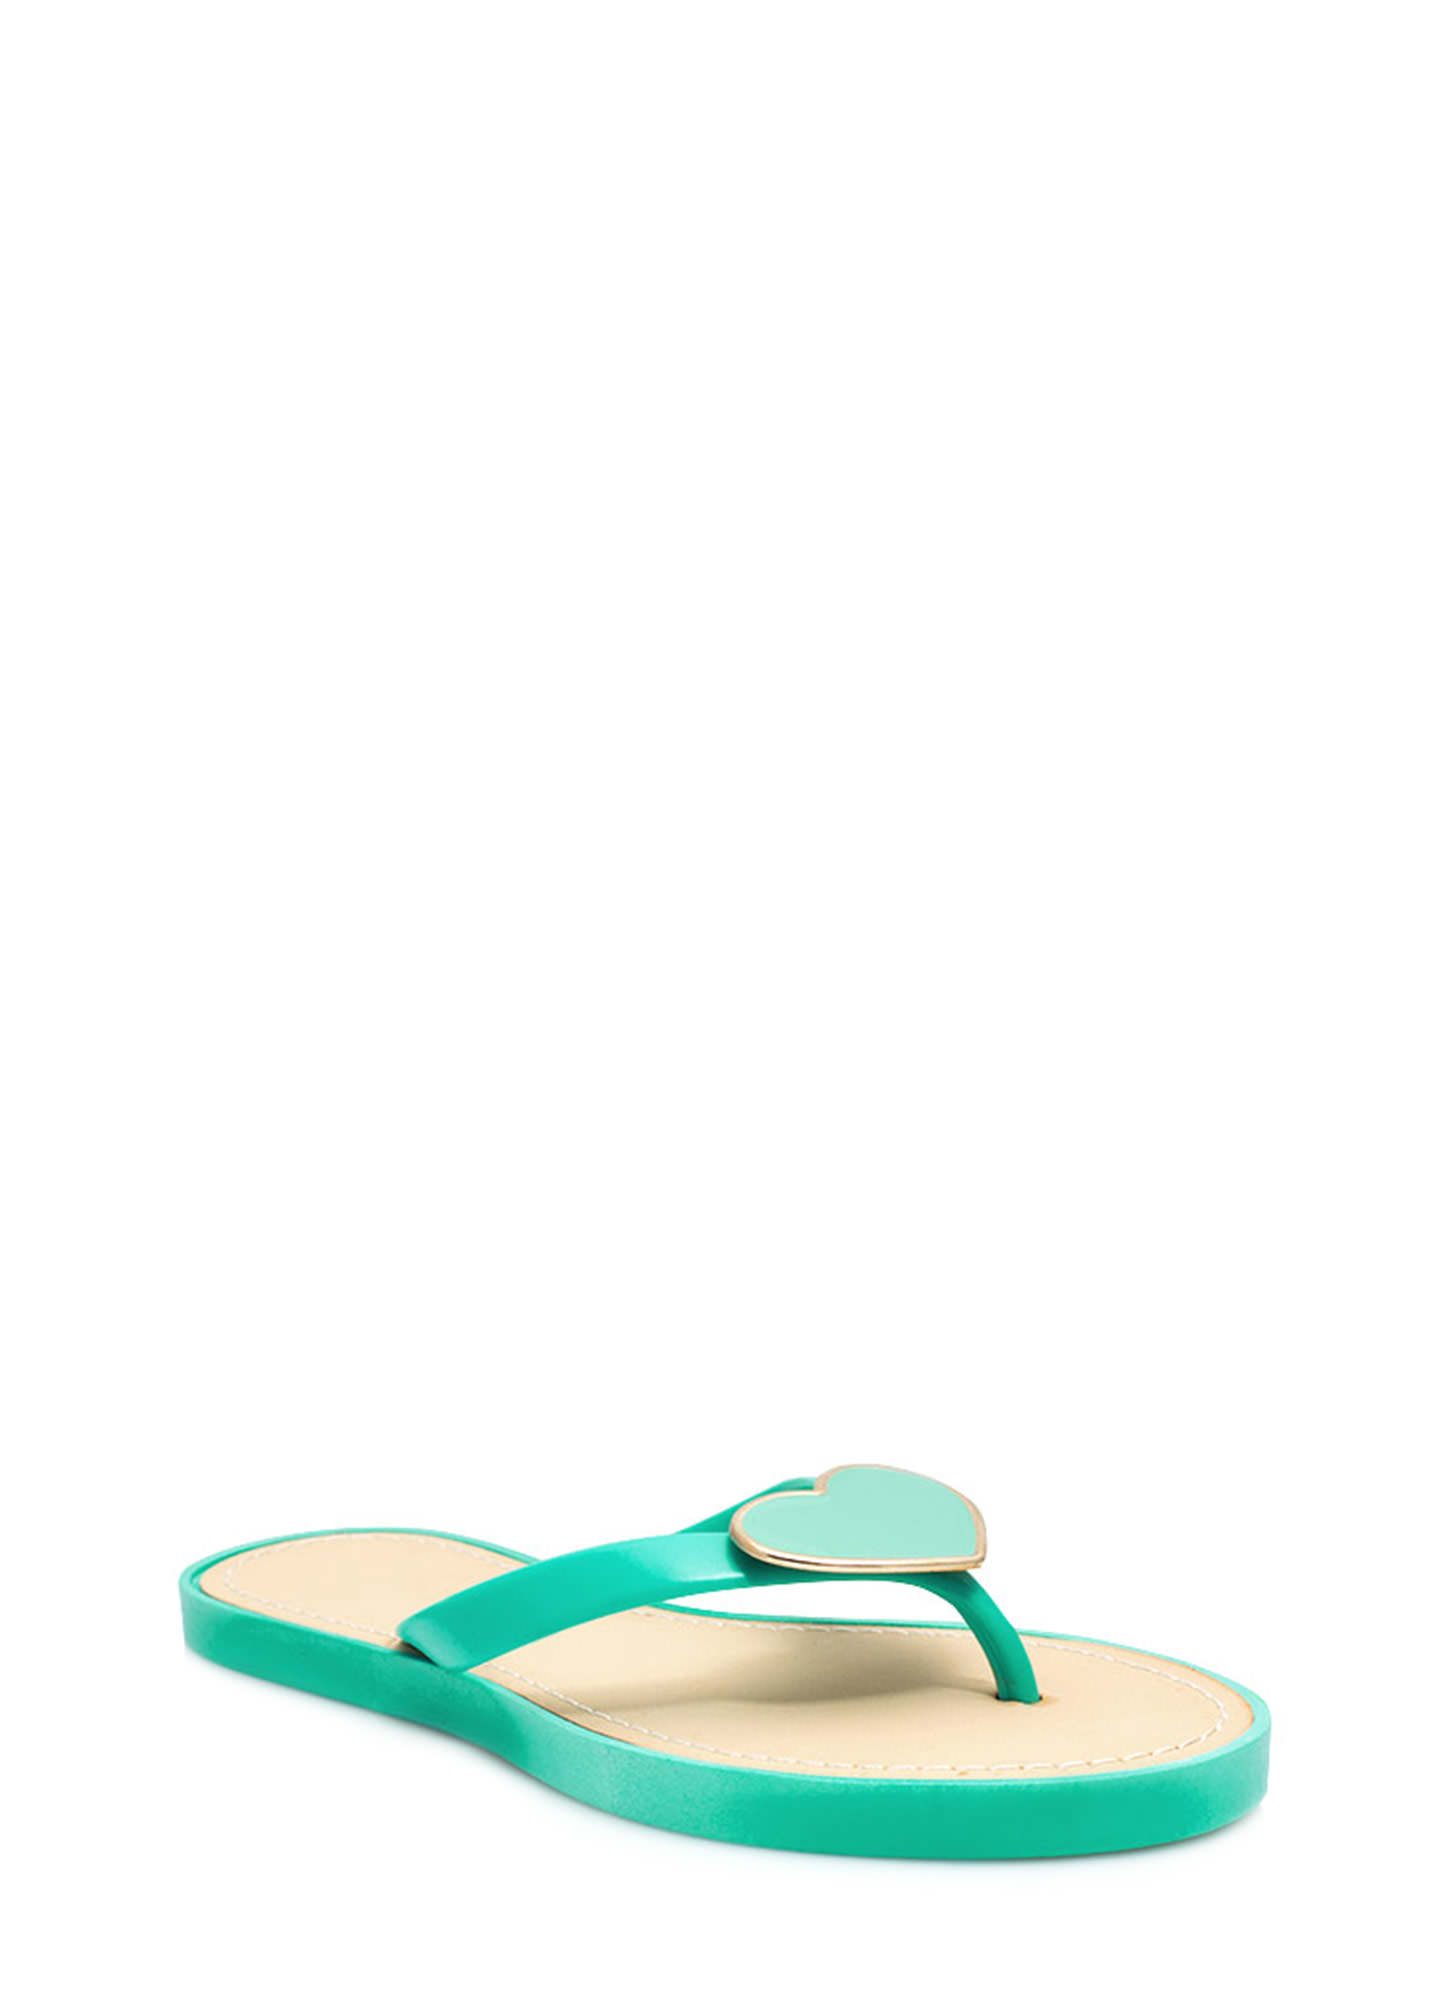 You Have A Big Heart Thong Sandals MINT